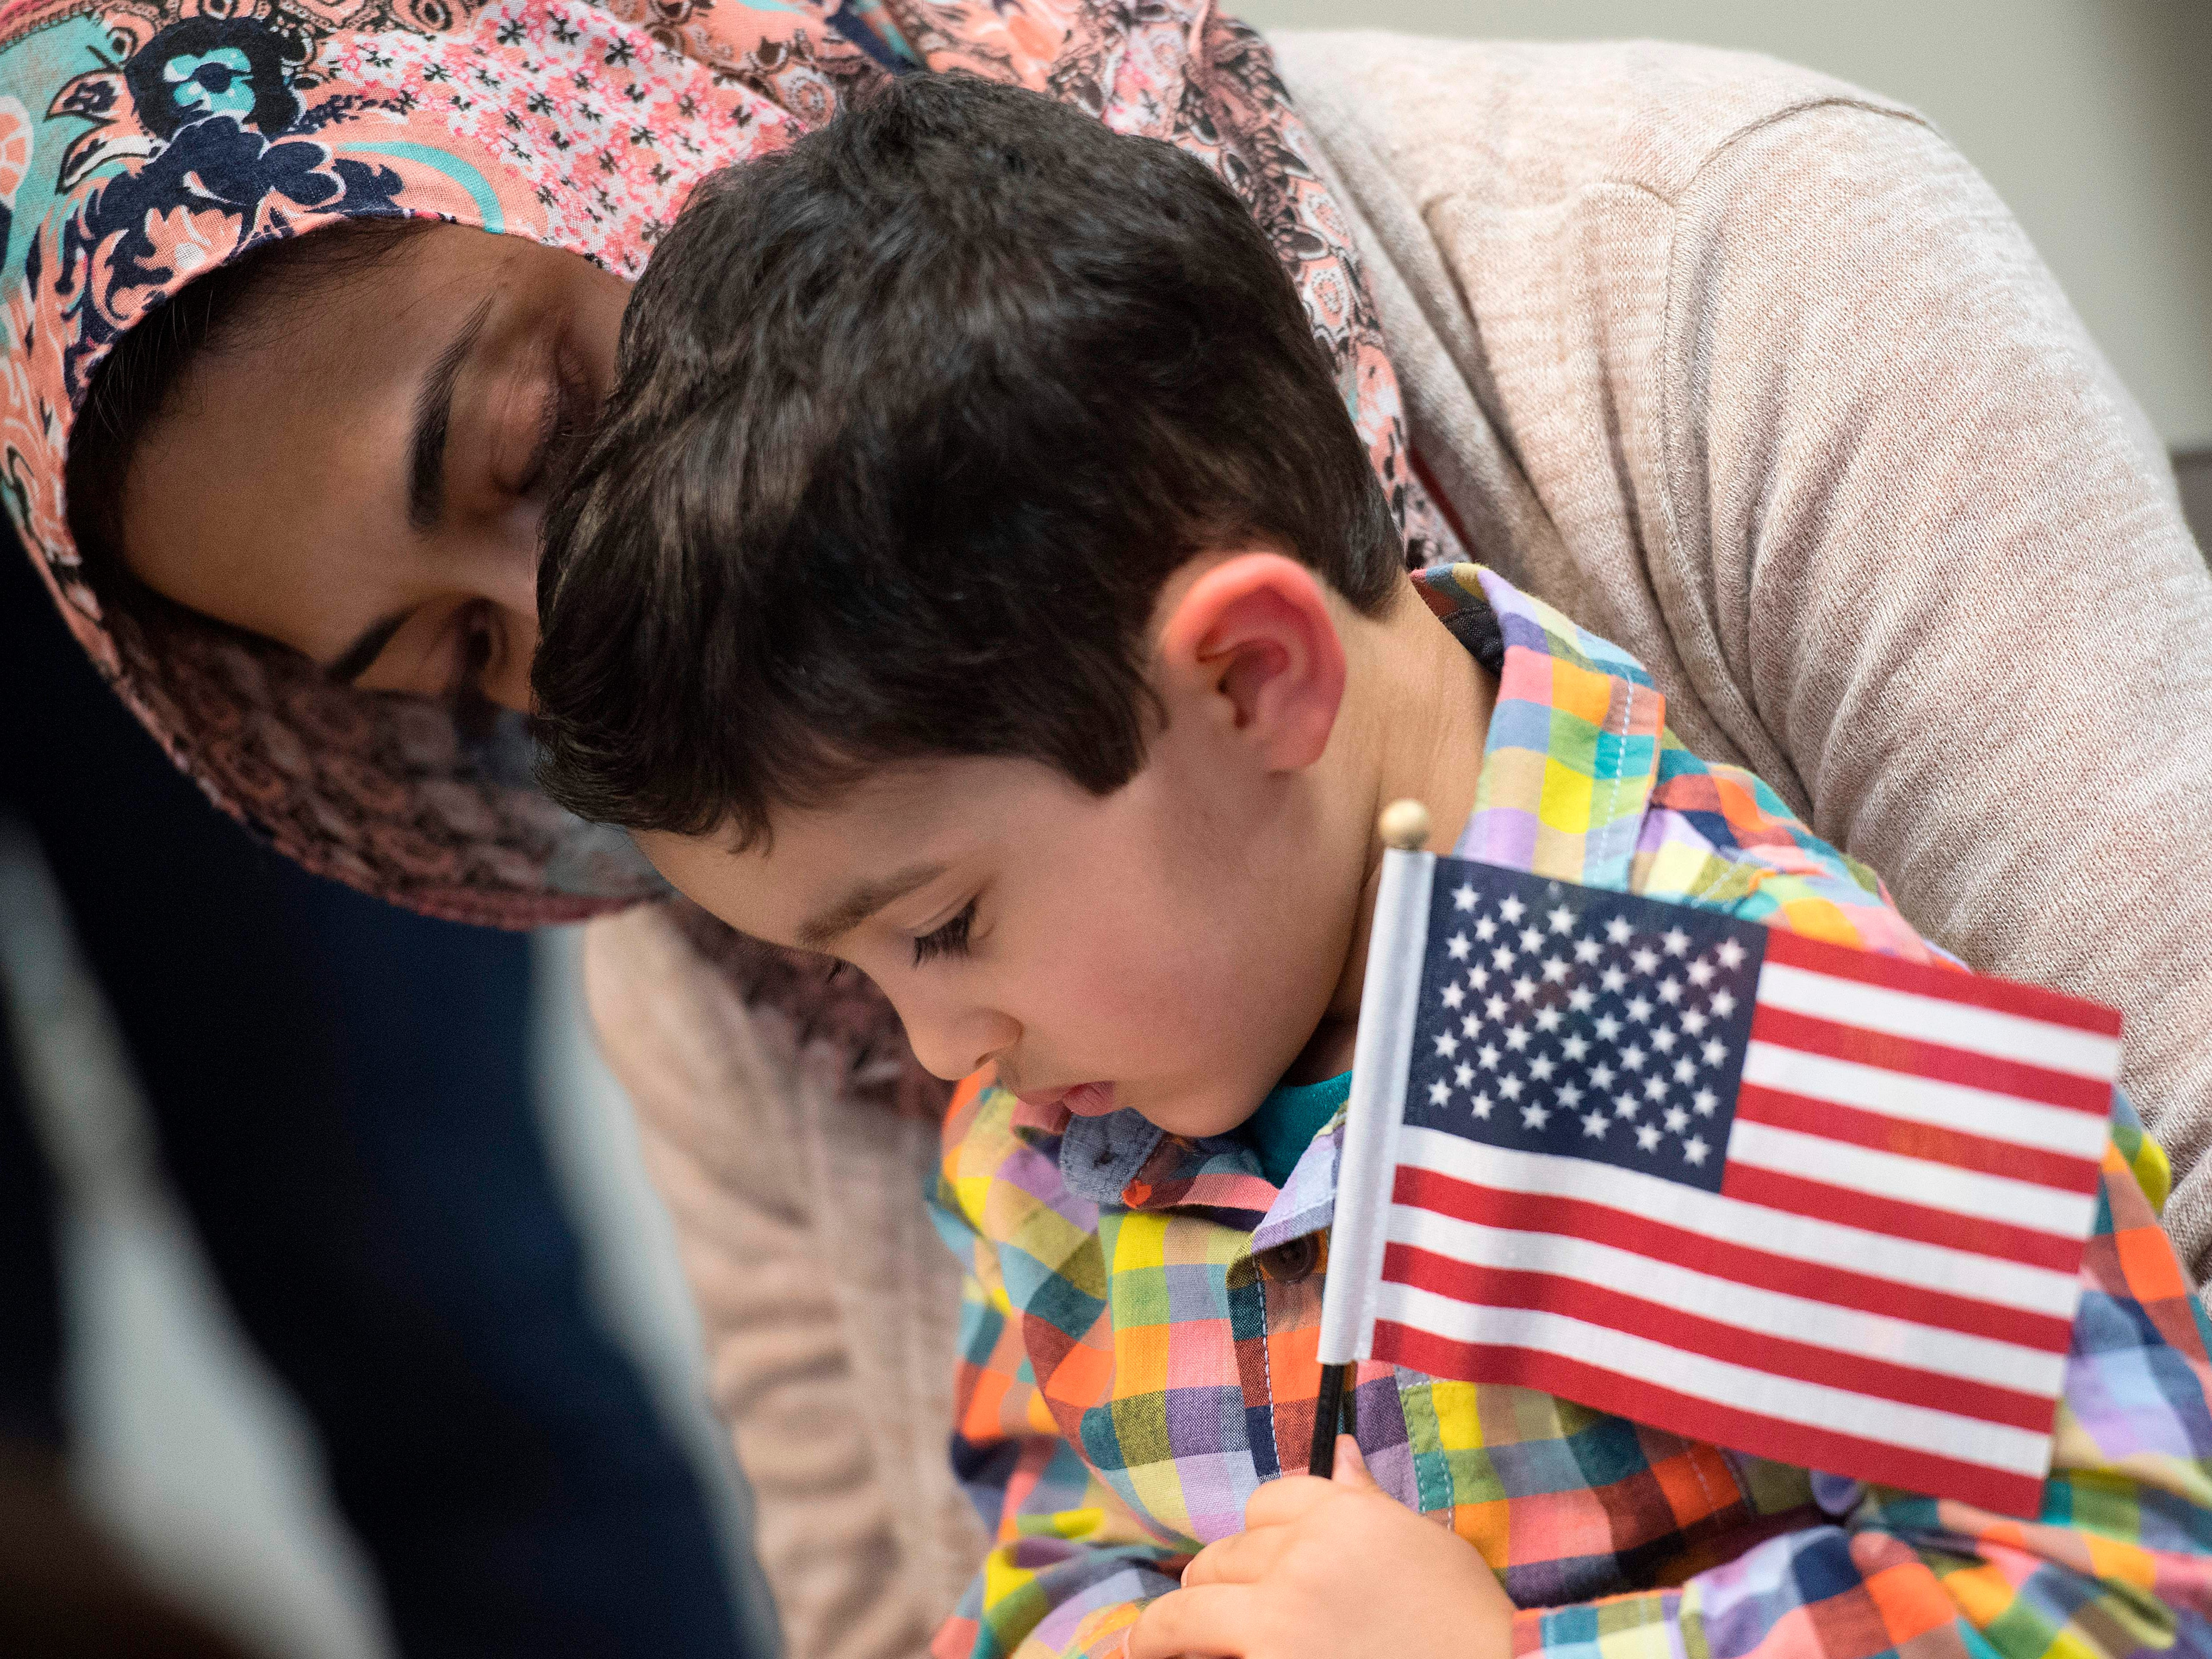 A boy is held by his mother as 35 children from 22 countries celebrate their U.S. citizenship during a special Halloween-themed ceremony at the U.S. Citizenship and Immigration Services Washington District Office in Fairfax, Virginia, on Oct. 31, 2018.